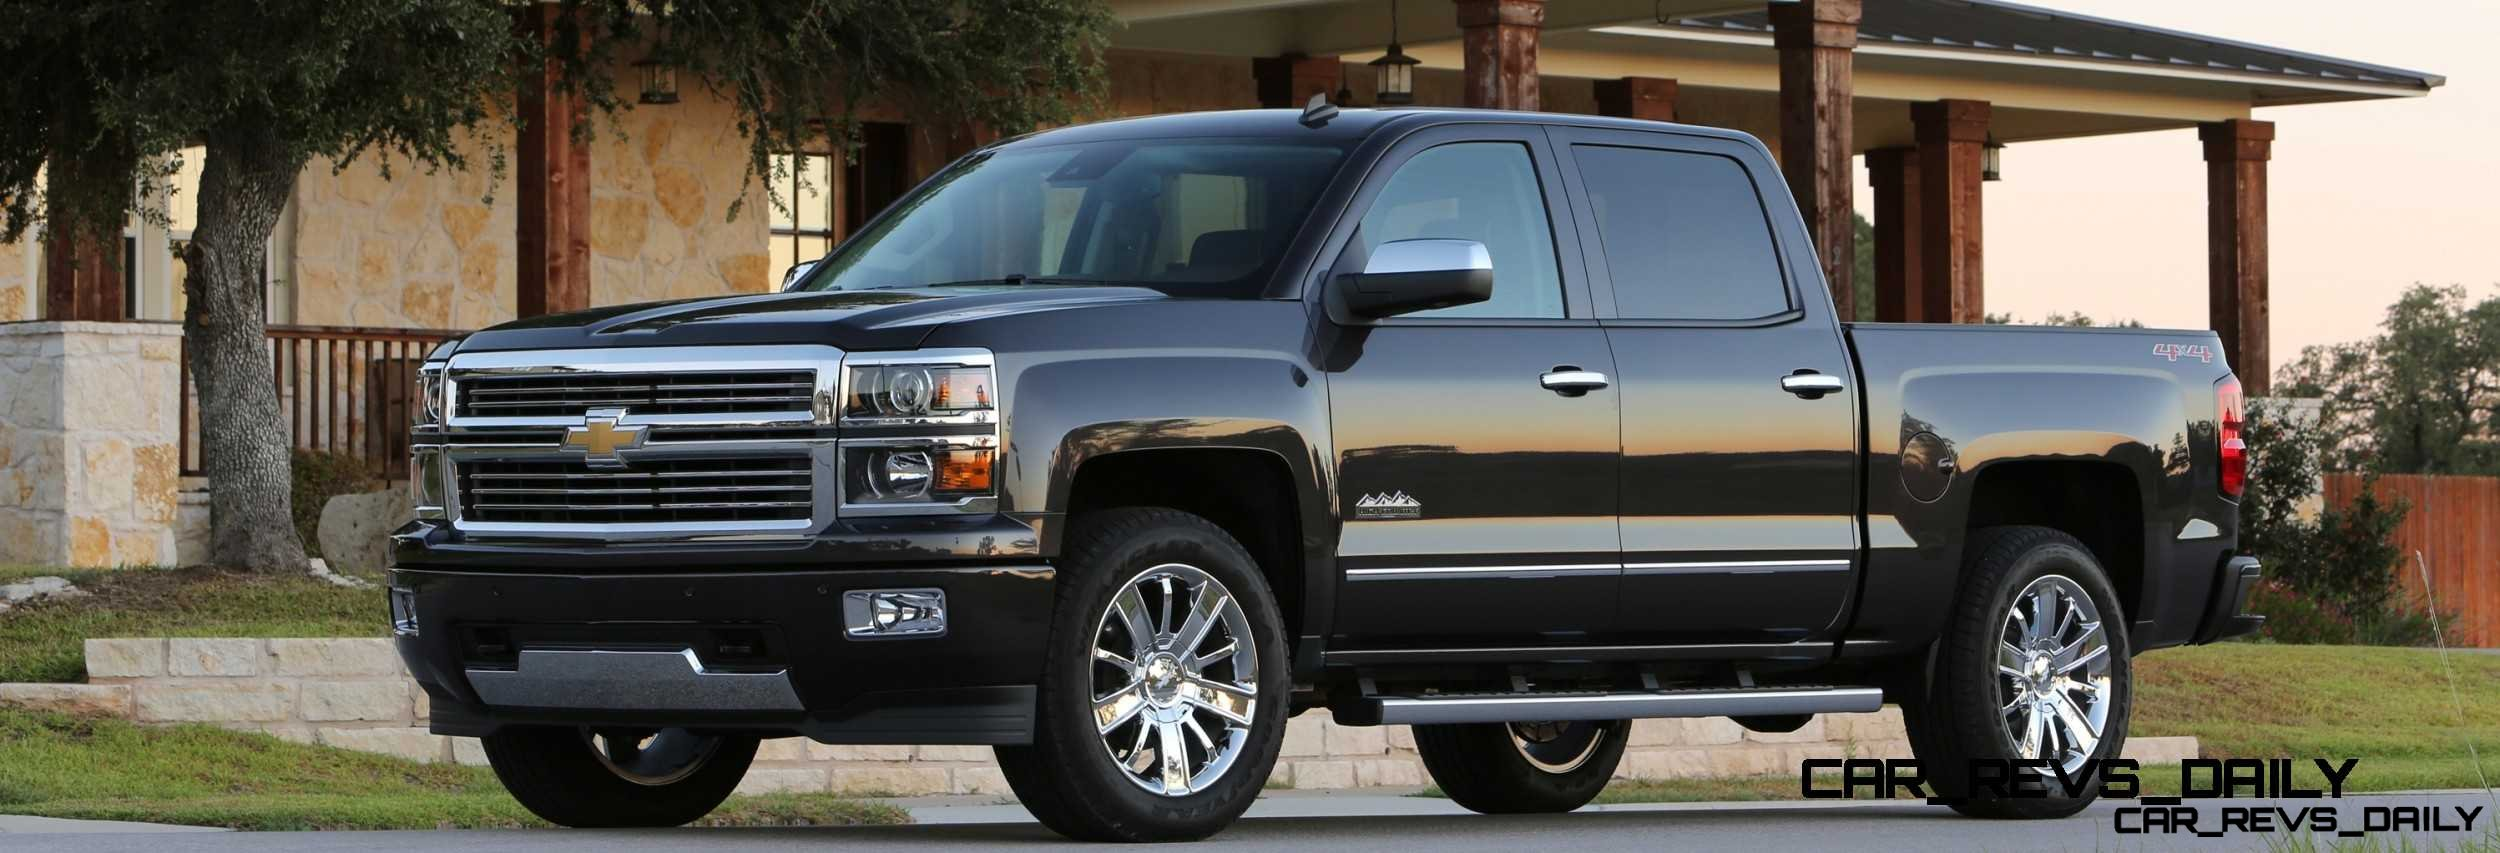 silverado high country visualizer with all new colors and 22 inch wheels galore. Black Bedroom Furniture Sets. Home Design Ideas